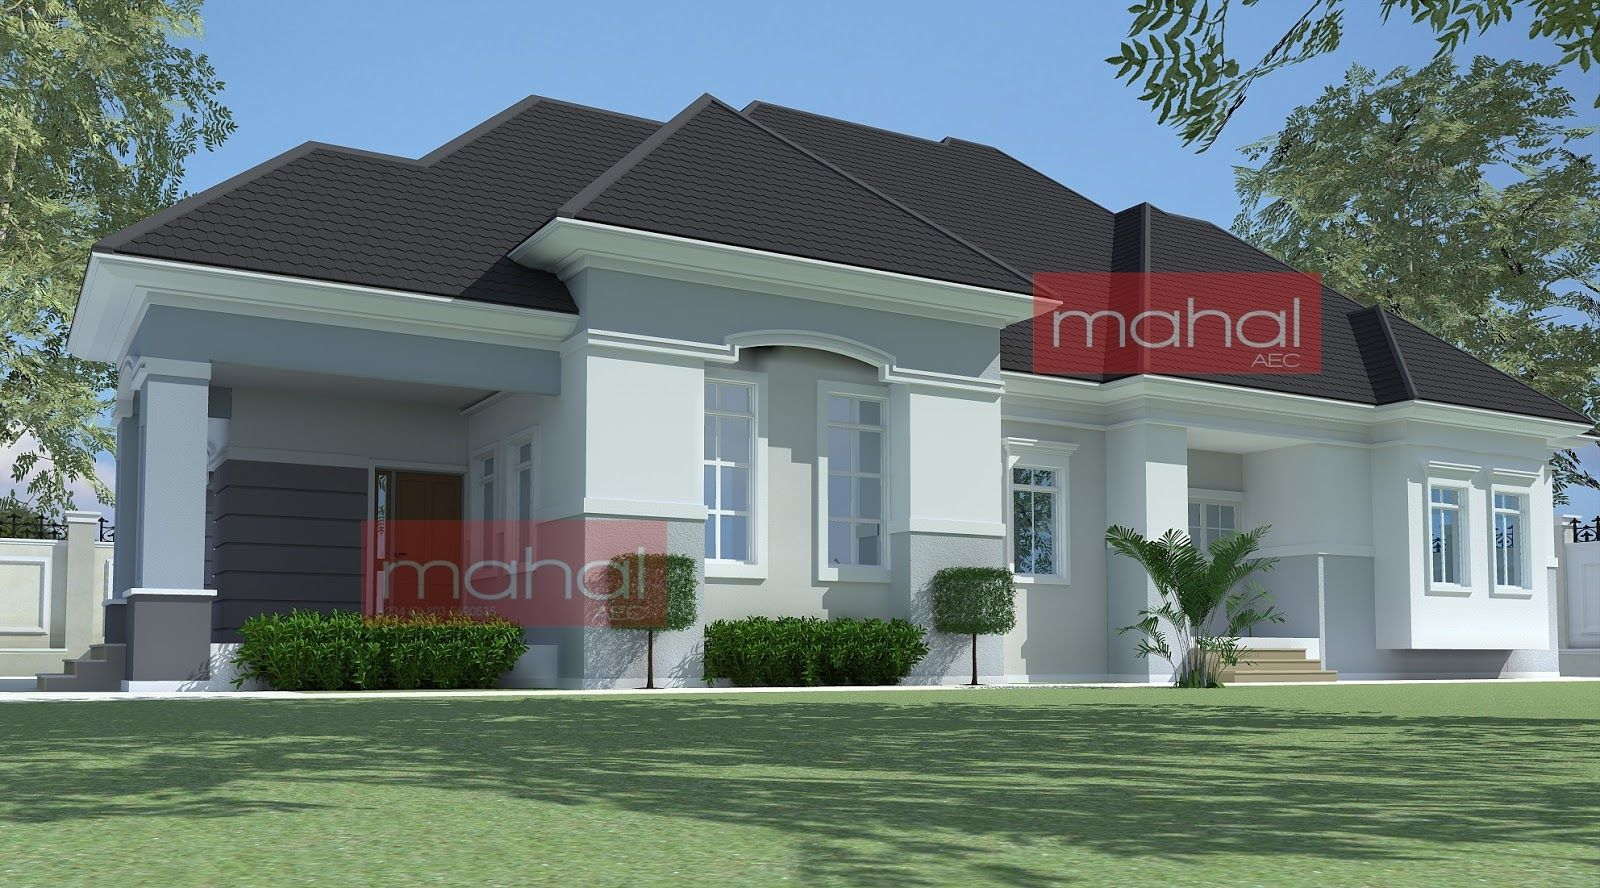 4 bedroom bungalow plan in nigeria 4 bedroom bungalow for Modern bungalow design